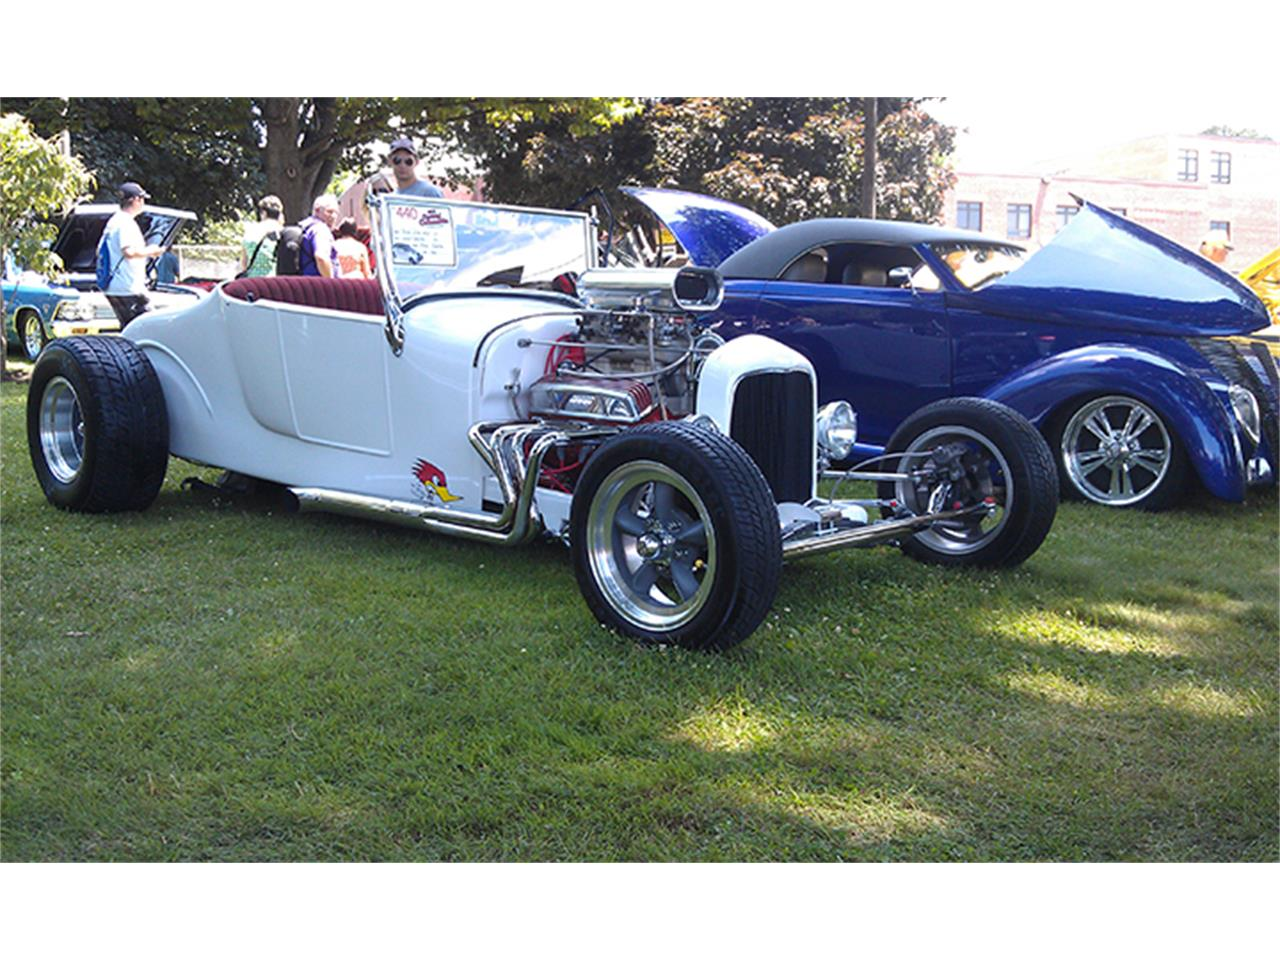 Large Picture of Classic 1927 Ford Roadster located in Pennsylvania - $22,500.00 Offered by a Private Seller - C92B